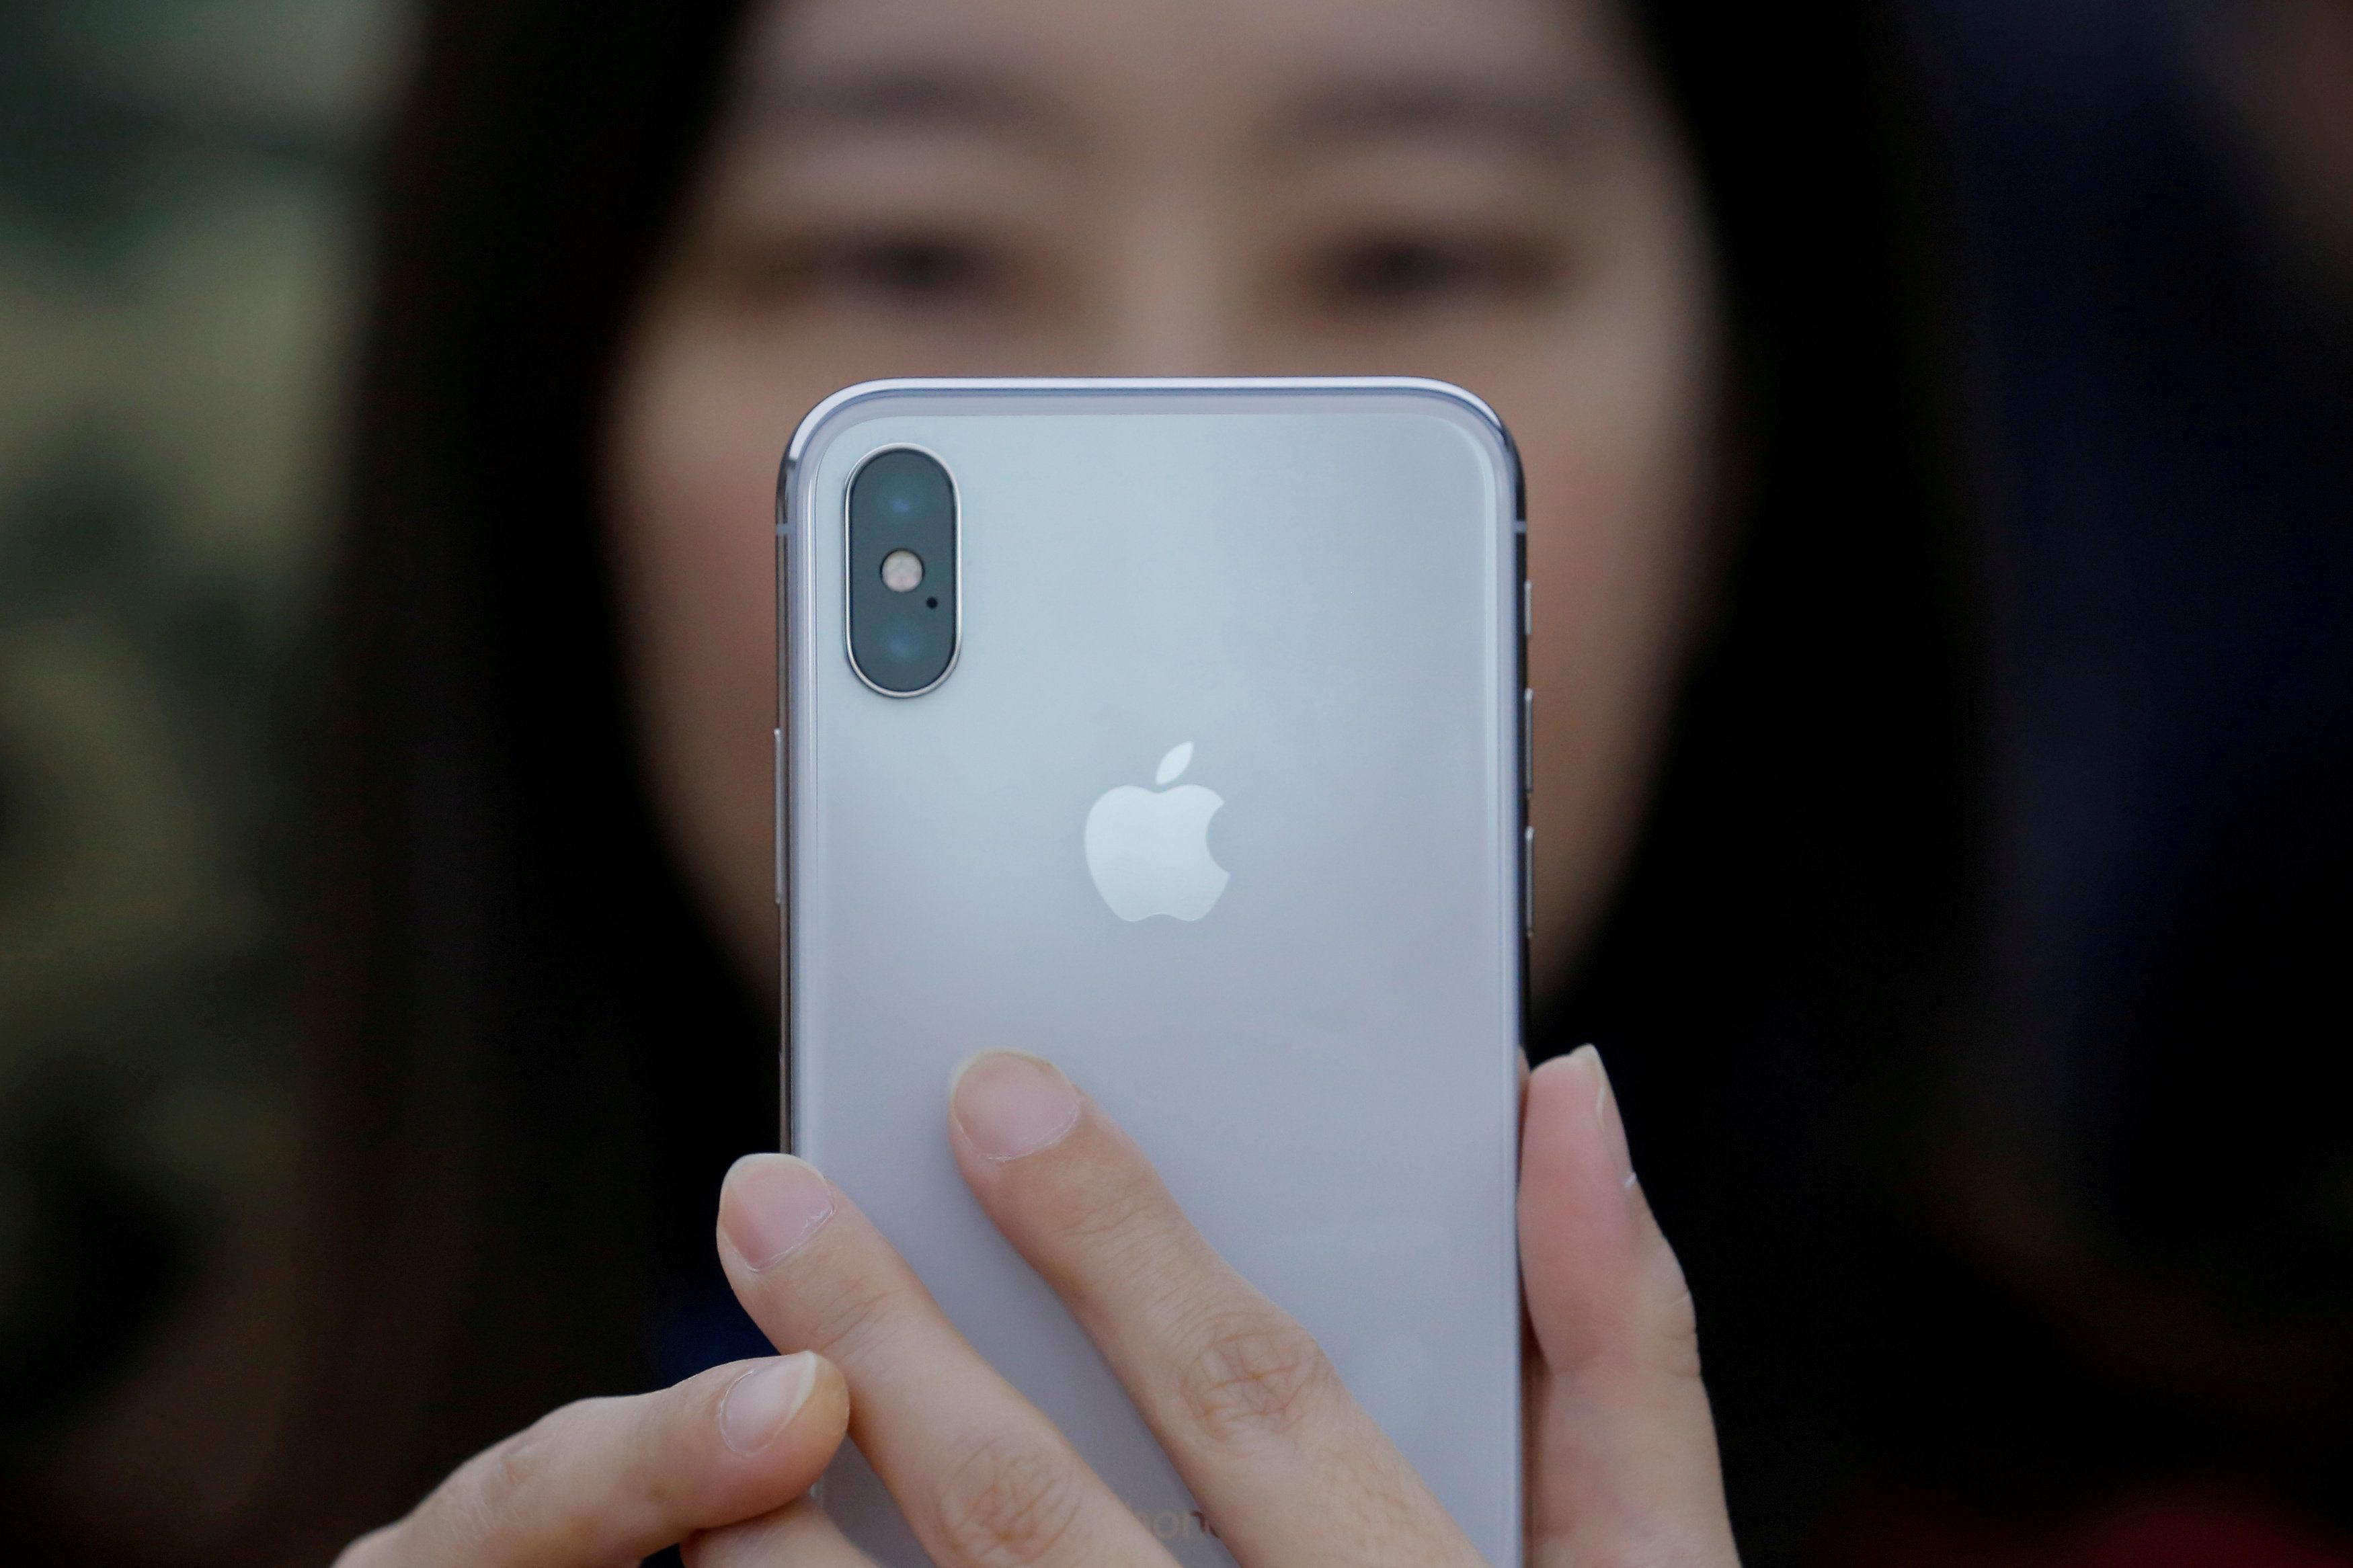 A attendee uses a new iPhone X during a presentation for the media in Beijing, China October 31, 2017. REUTERS/Thomas Peter